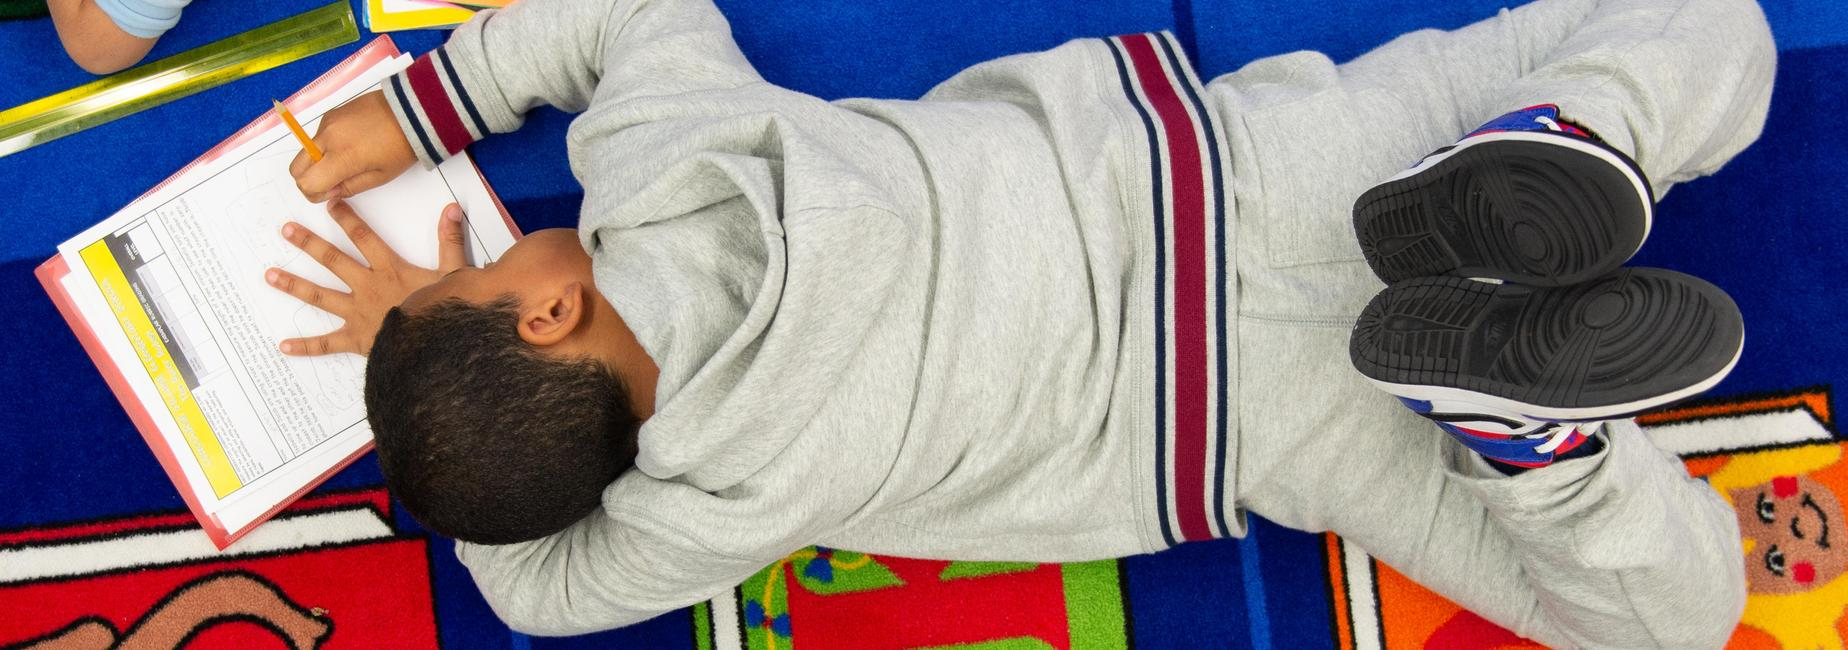 An elementary school student lying face down on a carpet writing.